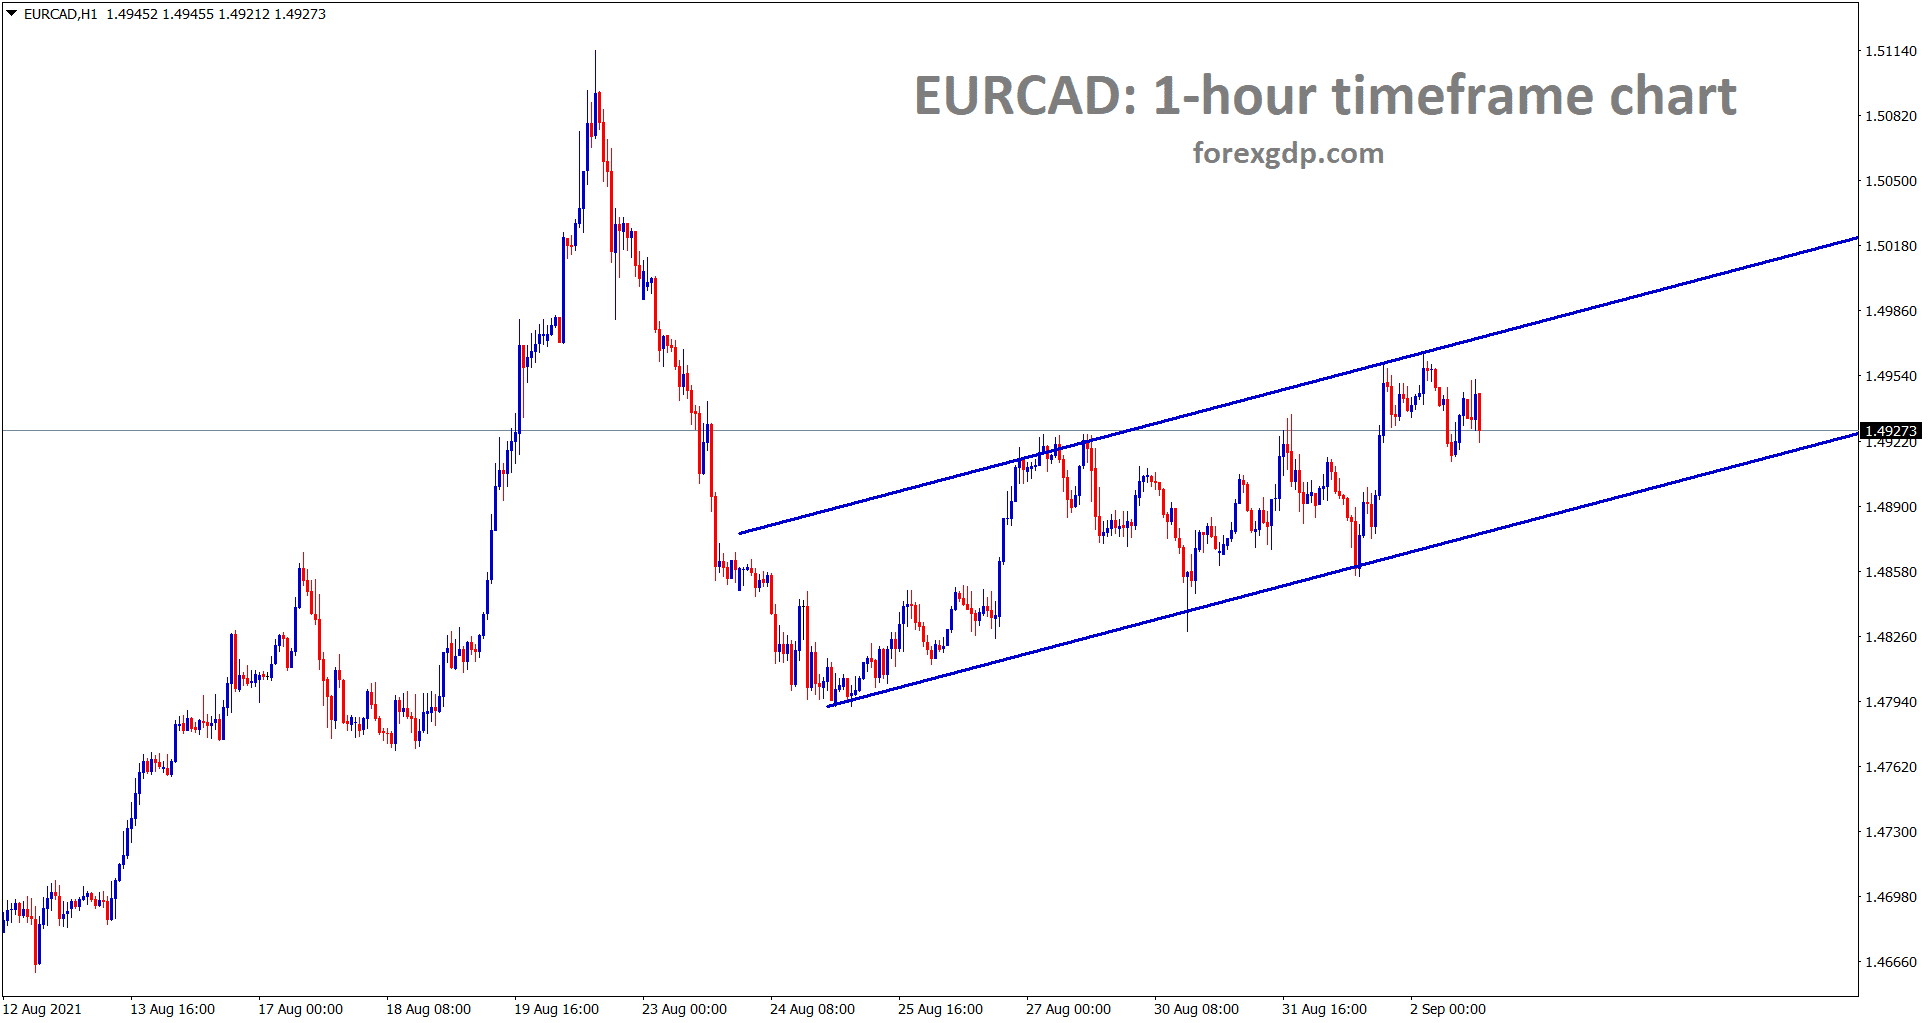 EURCAD is moving in a minor ascending channel